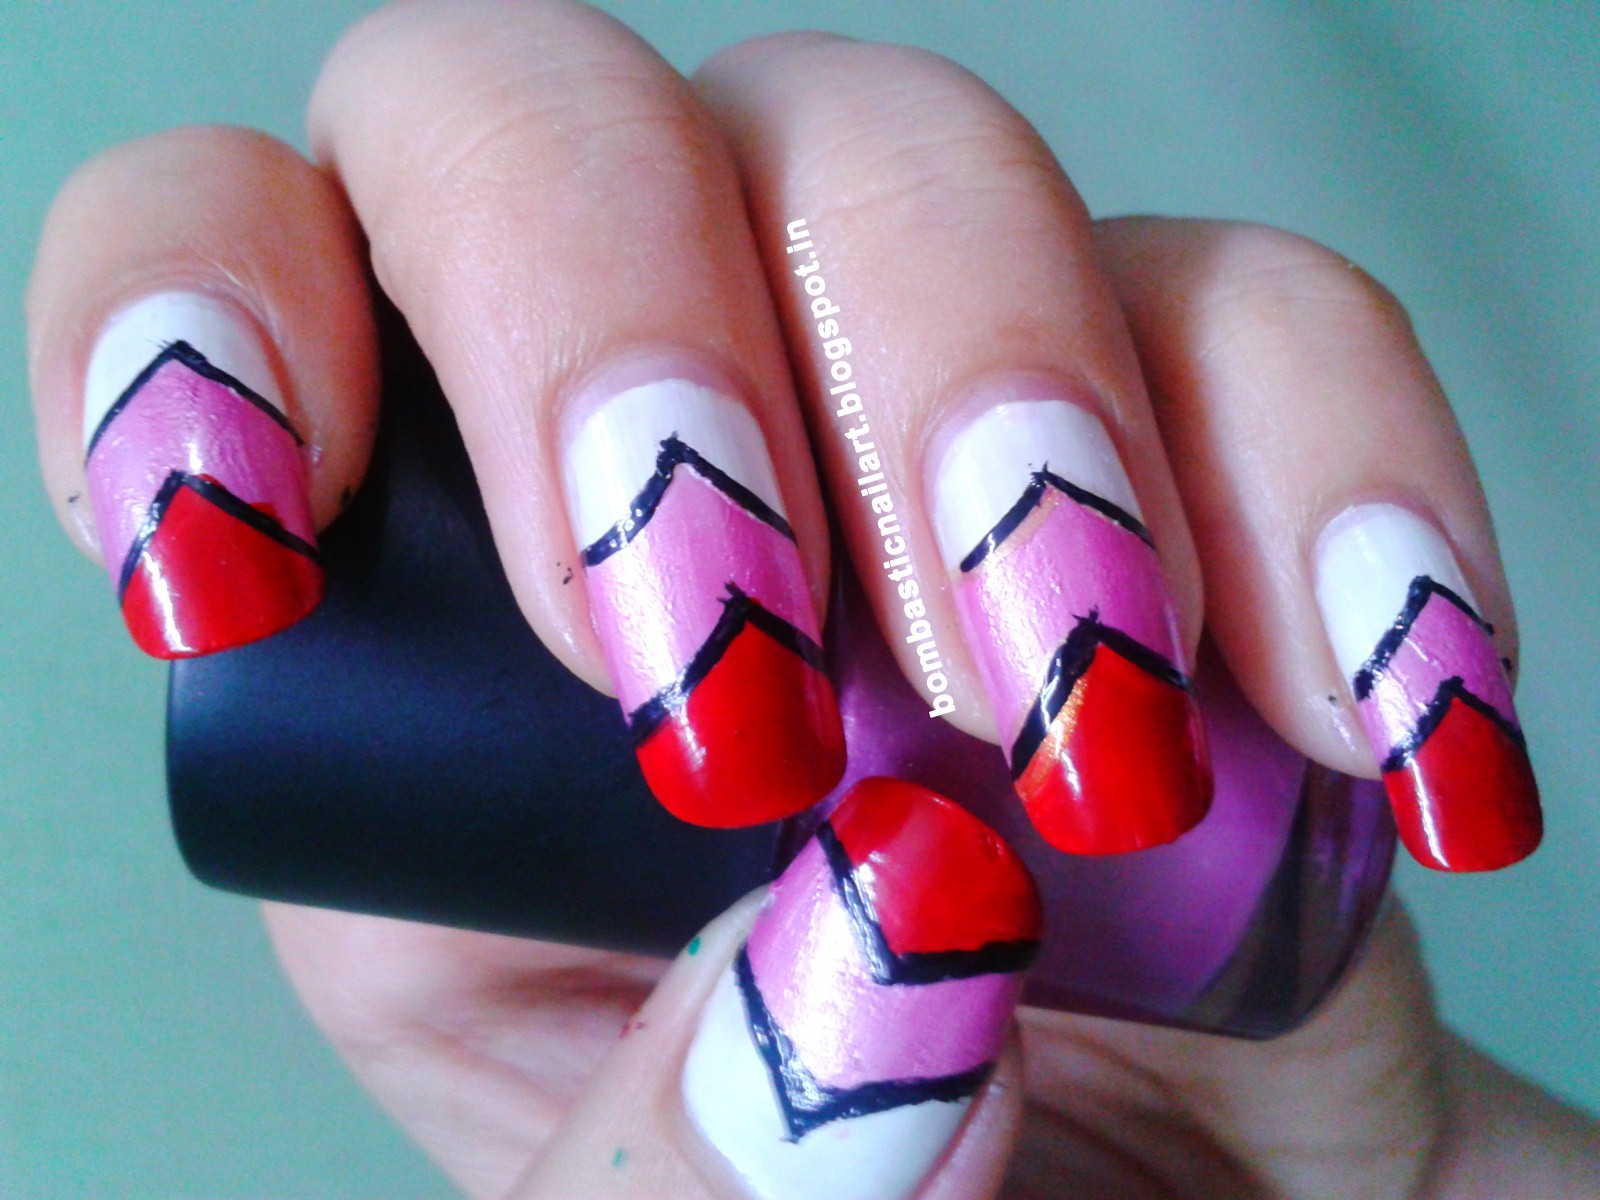 Diy heart nail art with tape bombastic nail art heart nail art prinsesfo Image collections